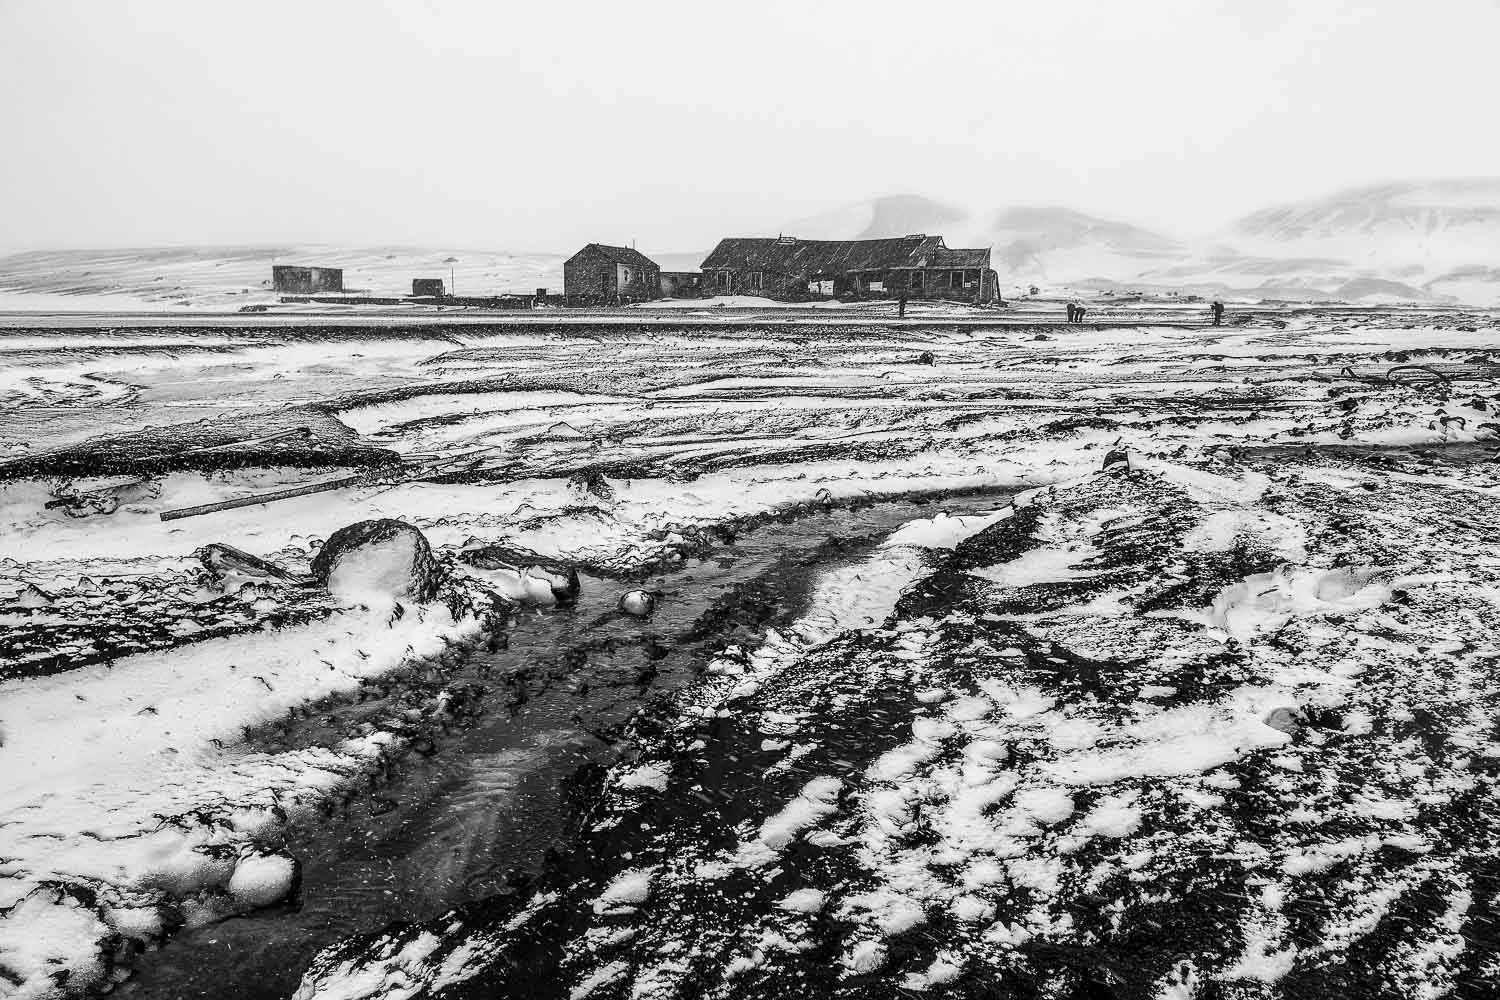 Ruins of a building at  Port Foster  on  Deception Island, Antarctica